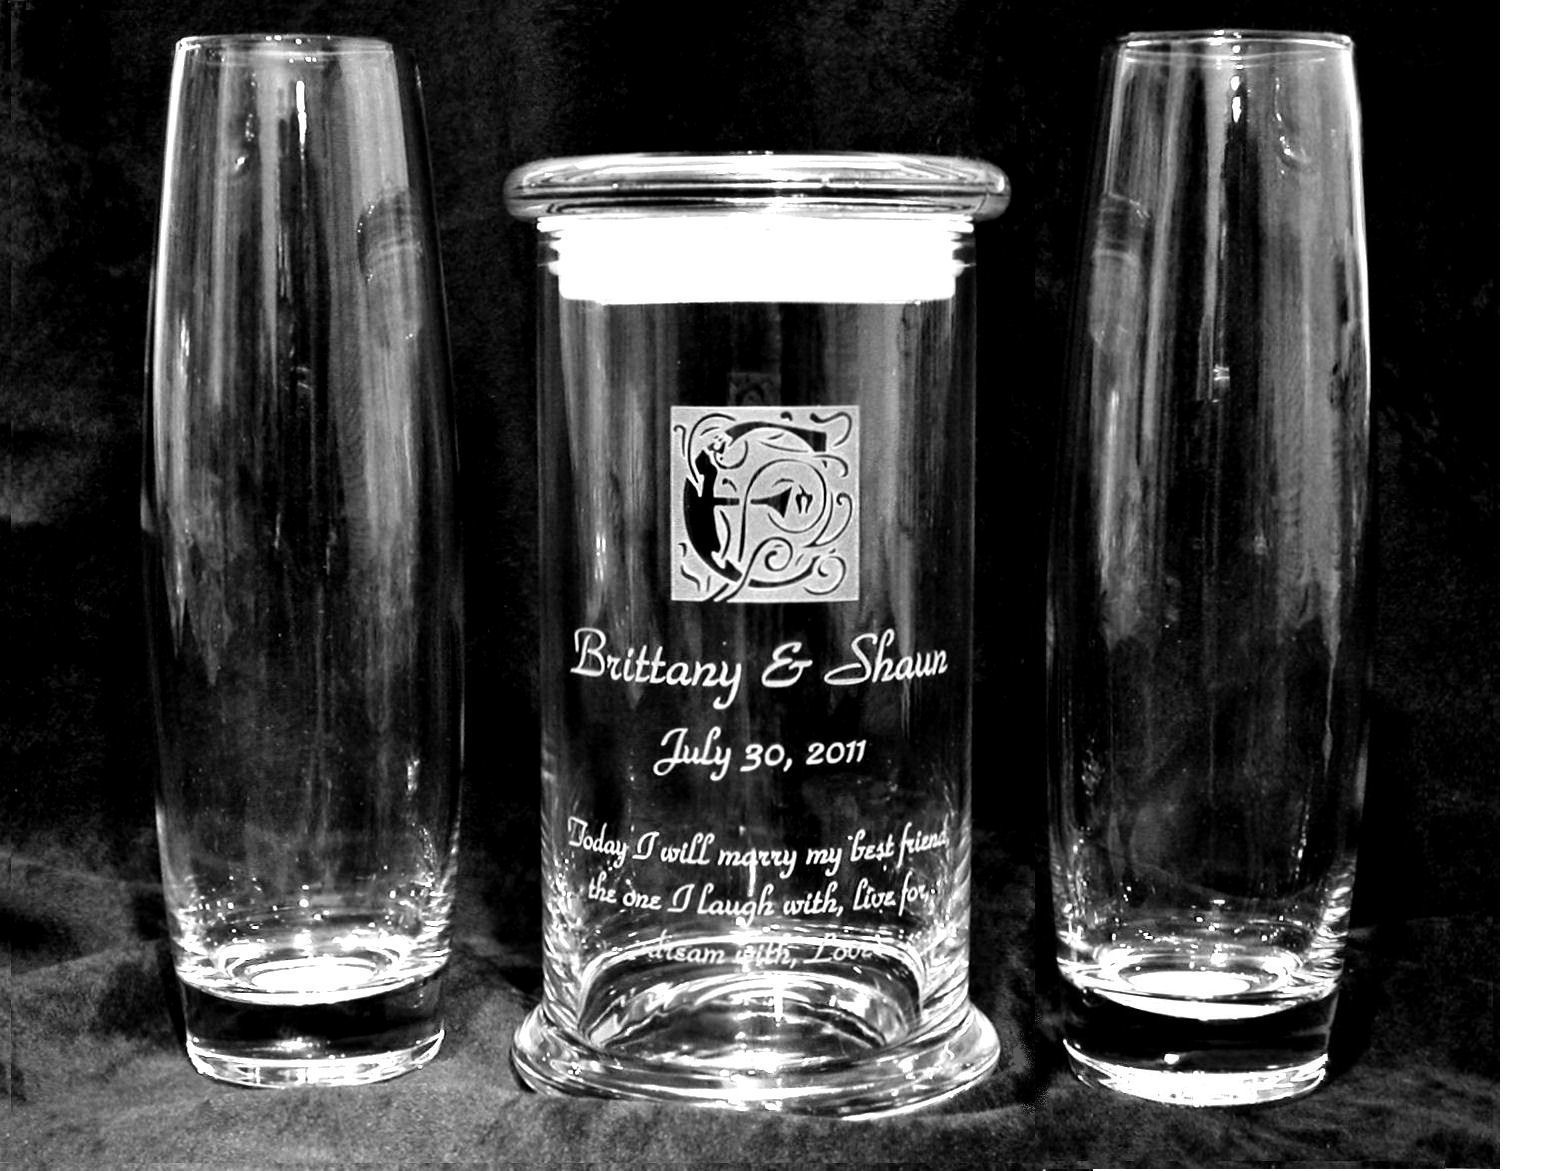 Personalized sand unity set status elite glassmage wedding personalized sand unity set status elite standard clear glass main vase with seal tite glass lid plus two pouring vases with bride groom names reviewsmspy